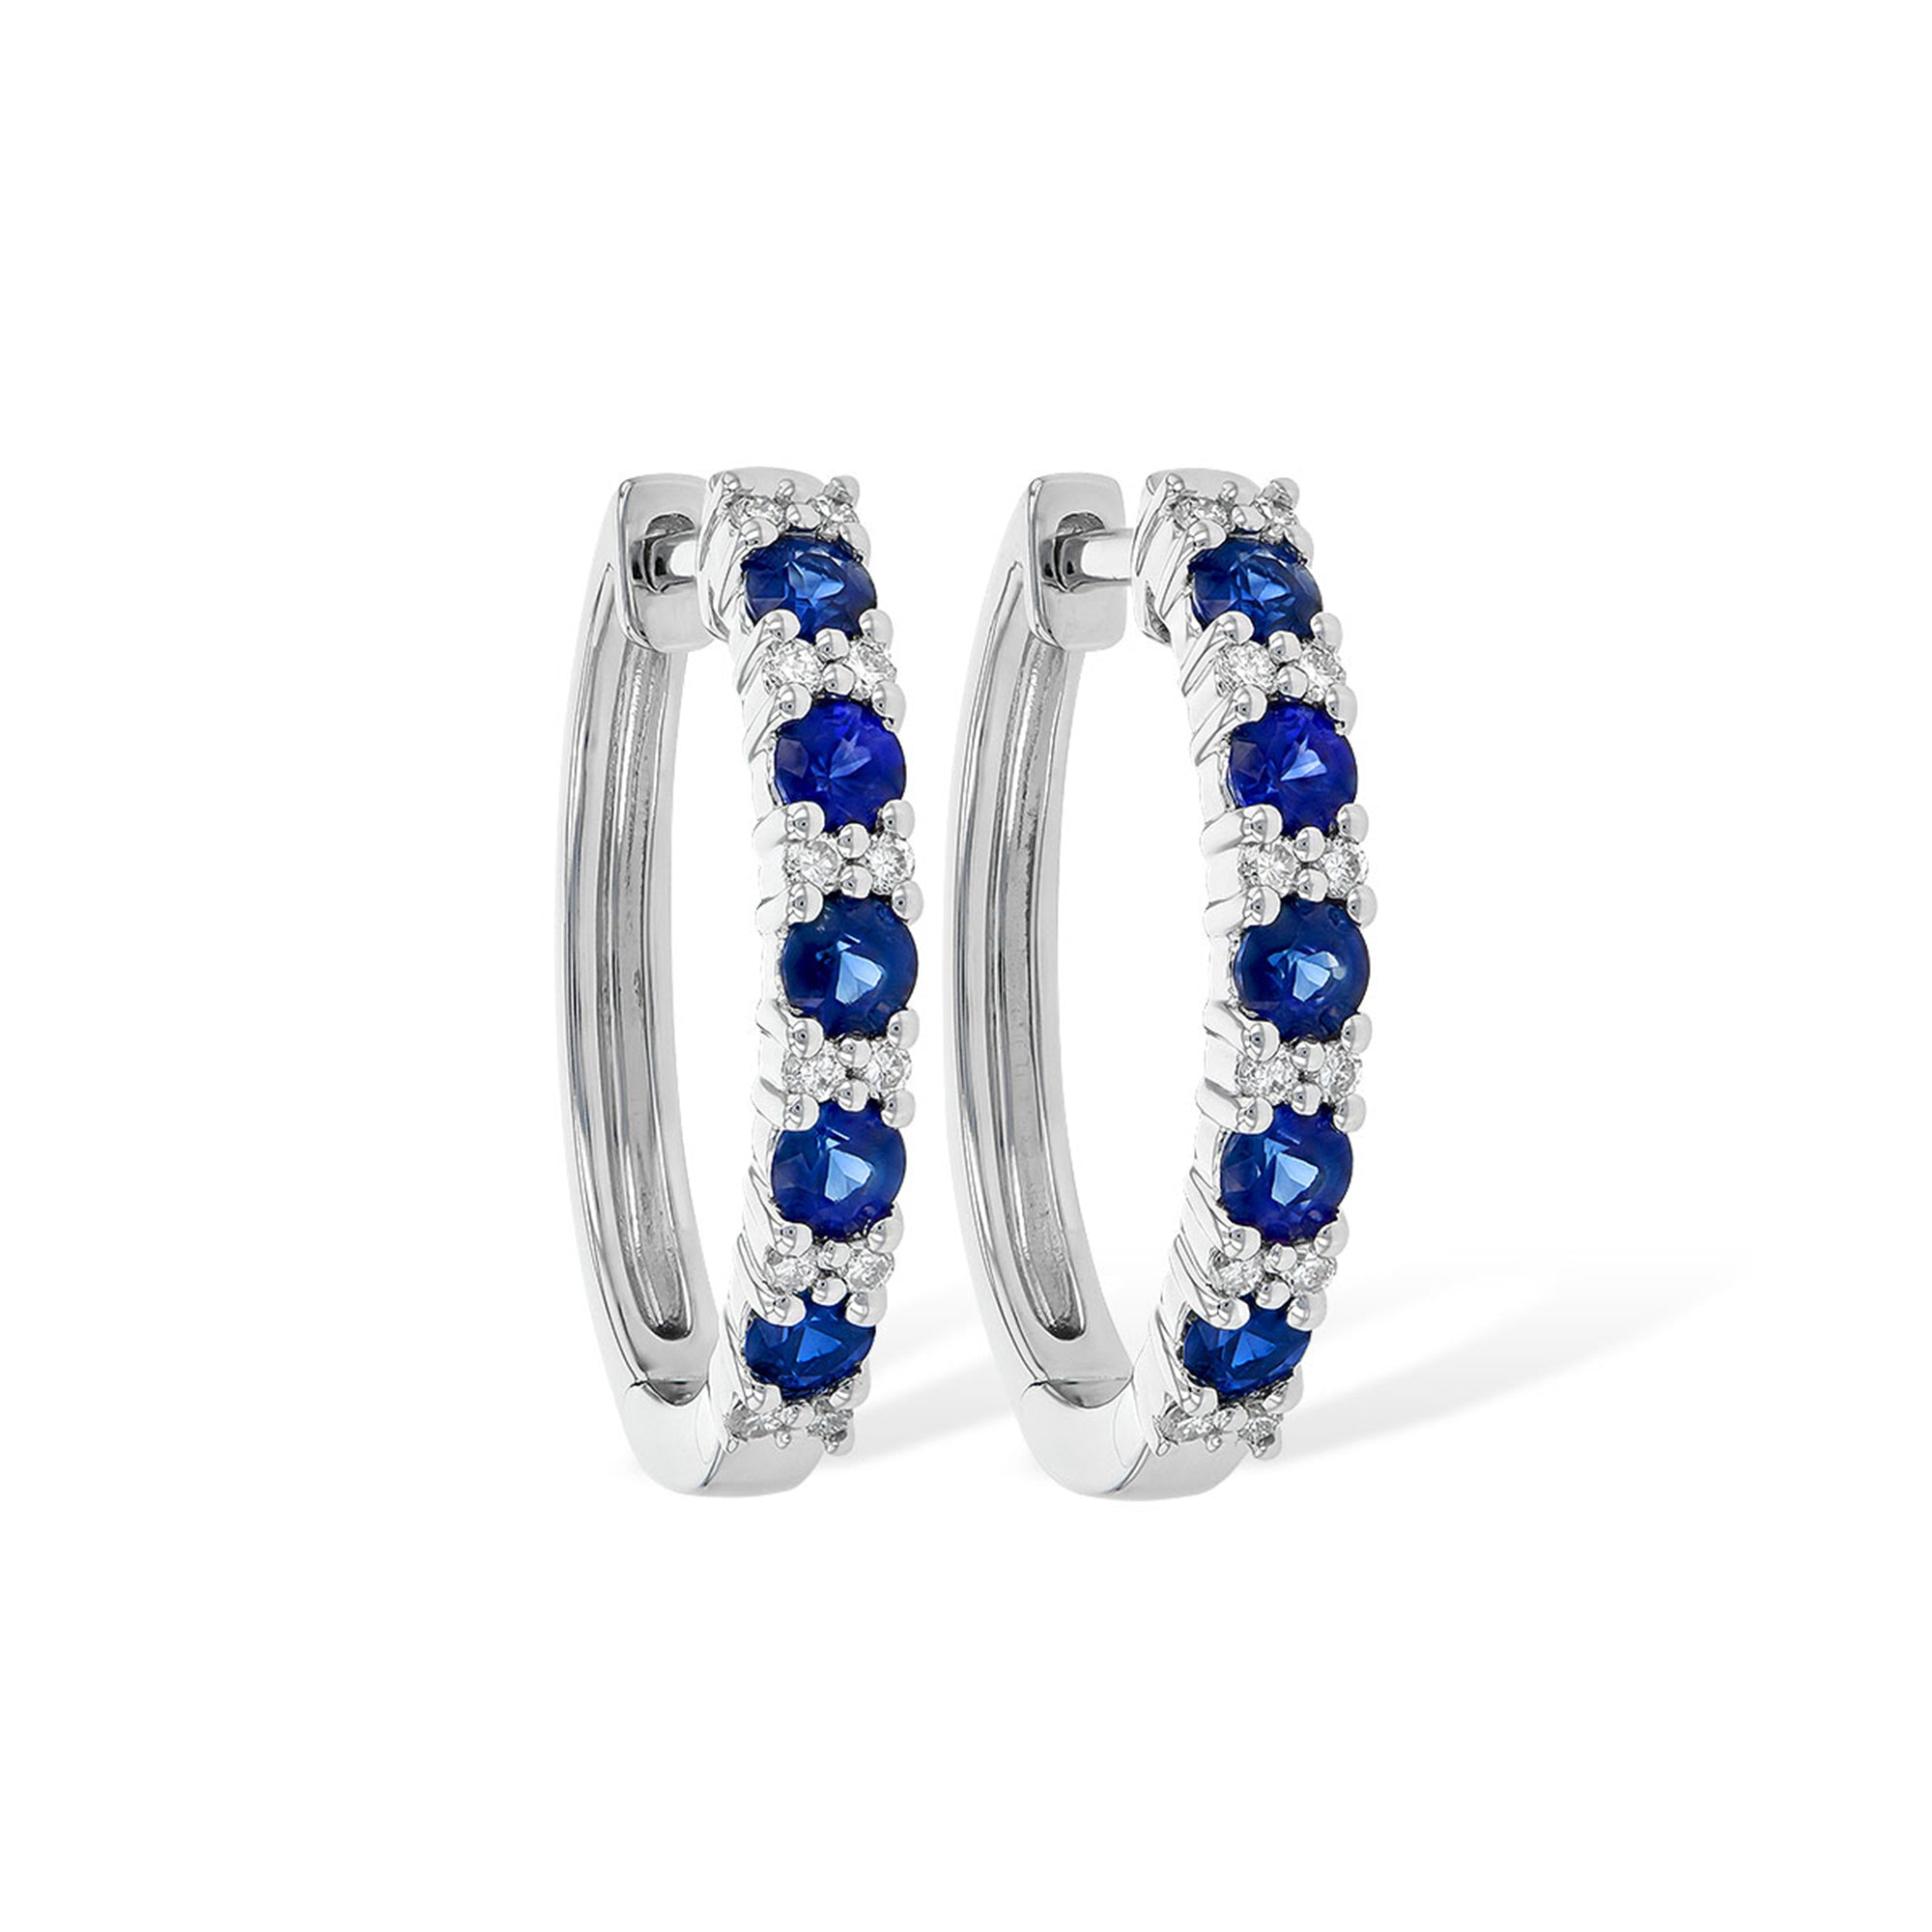 Blue Sapphire and Diamond Hoop Earrings in White Gold - Talisman Collection Fine Jewelers